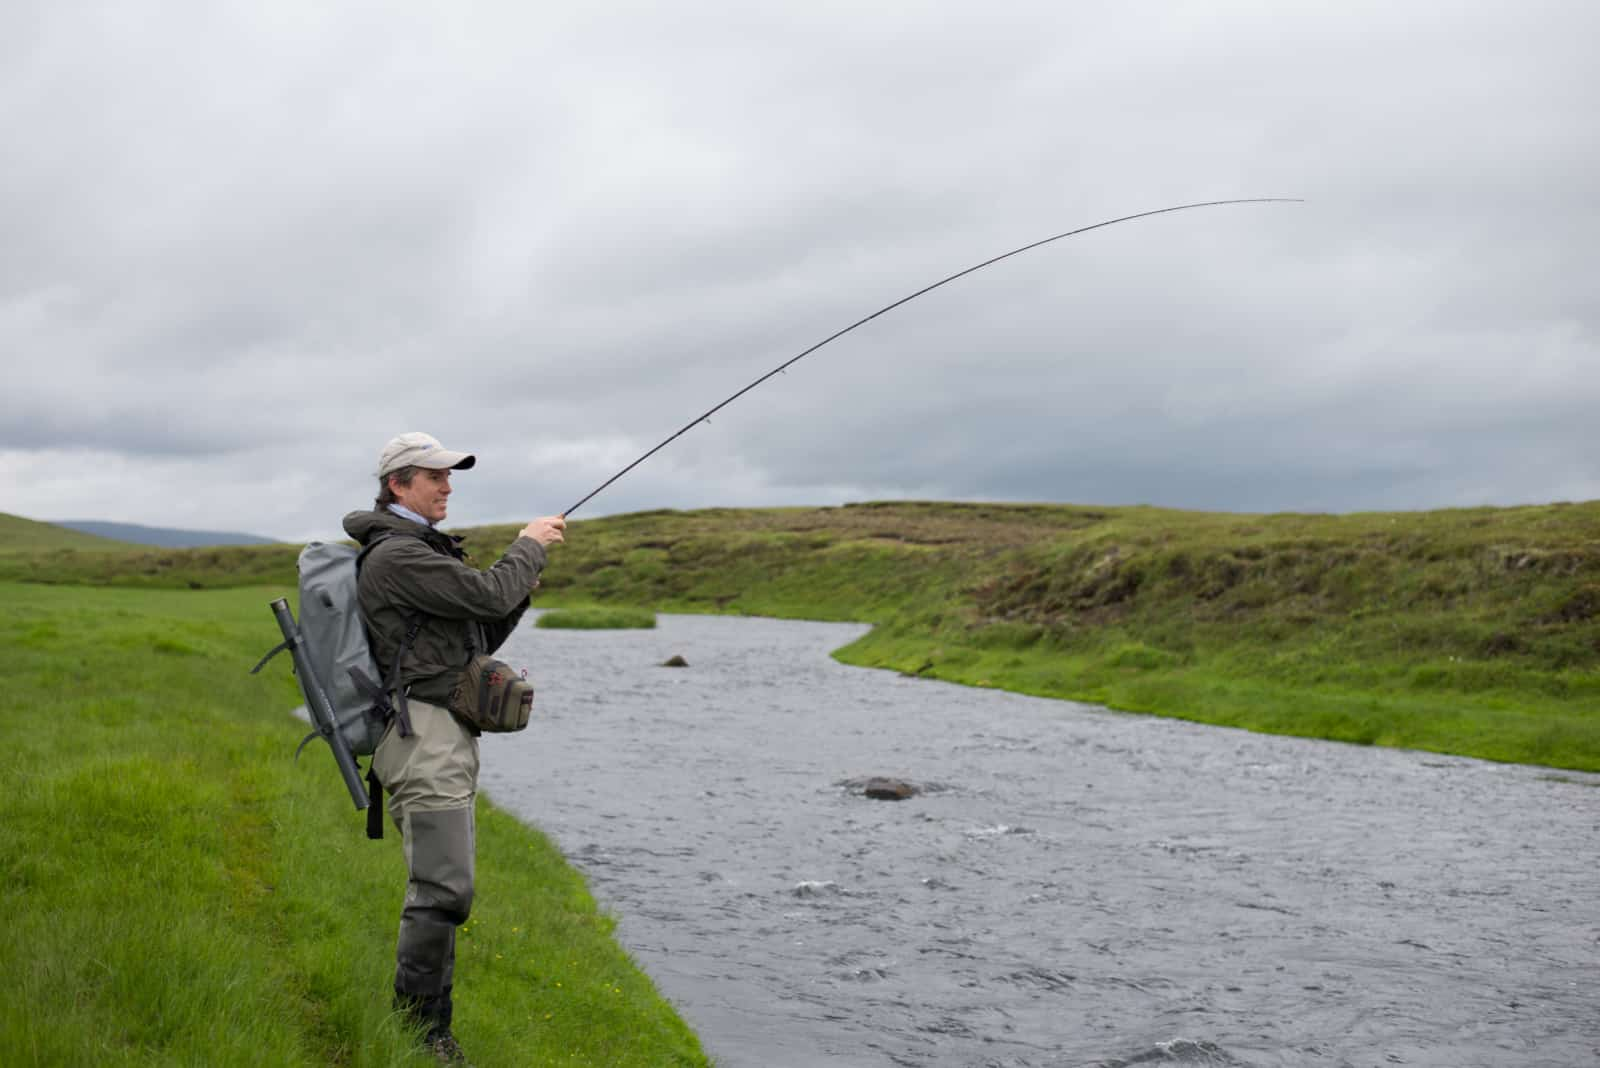 fishing-in-iceland-for-brown-trout-2